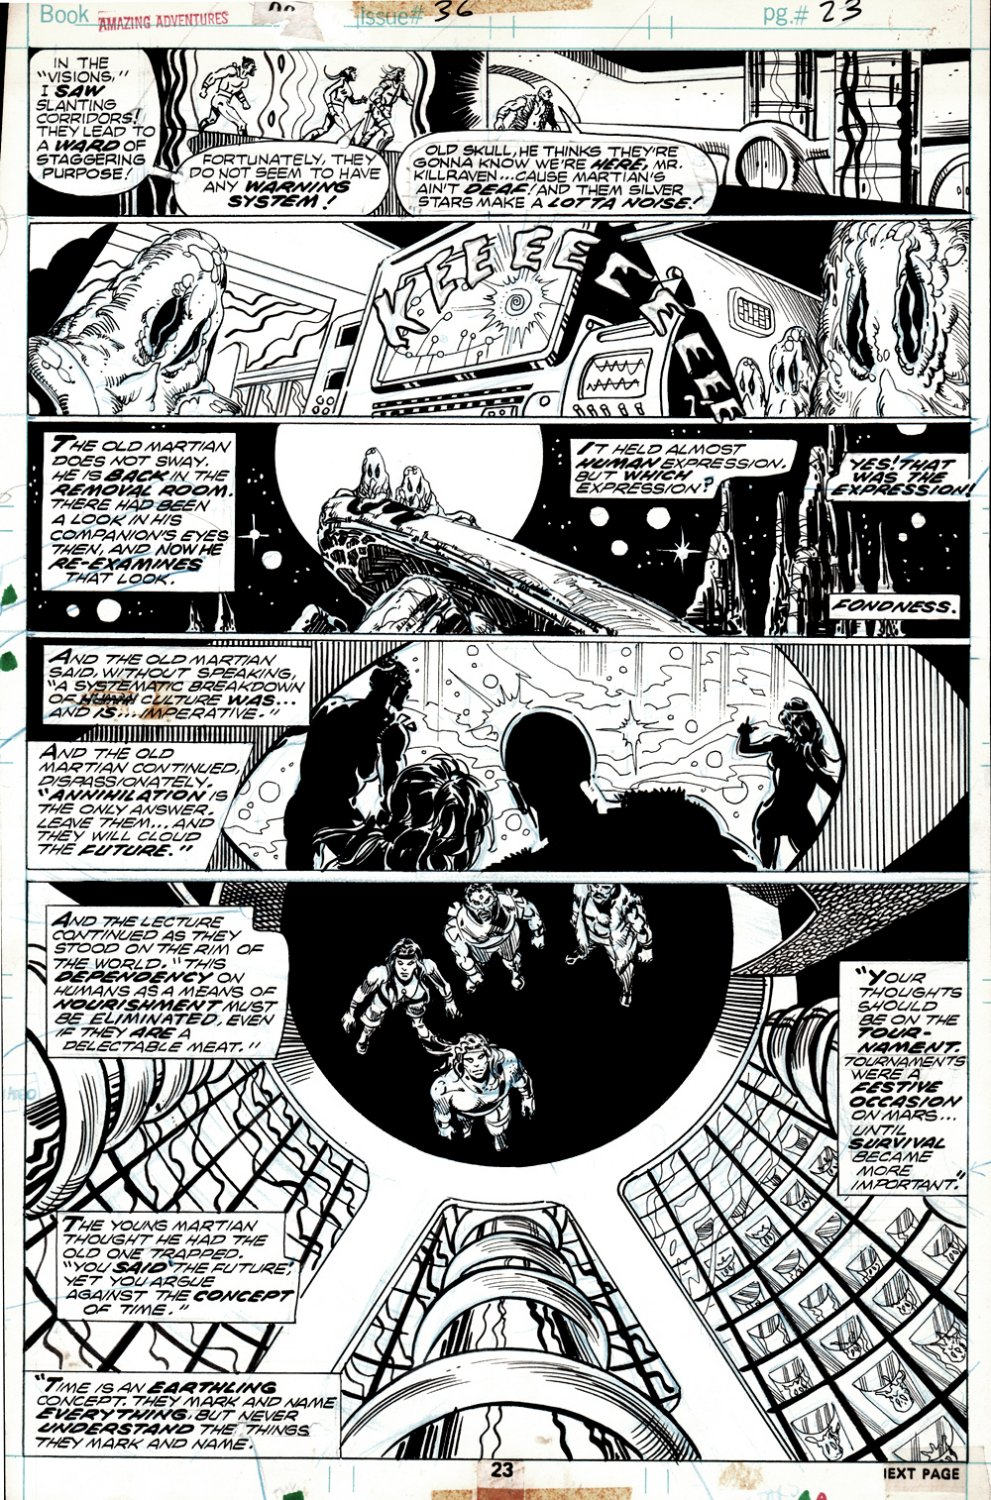 Amazing Adventures #36 p 23 (INCREDIBLY DETAILED PAGE!) 1975